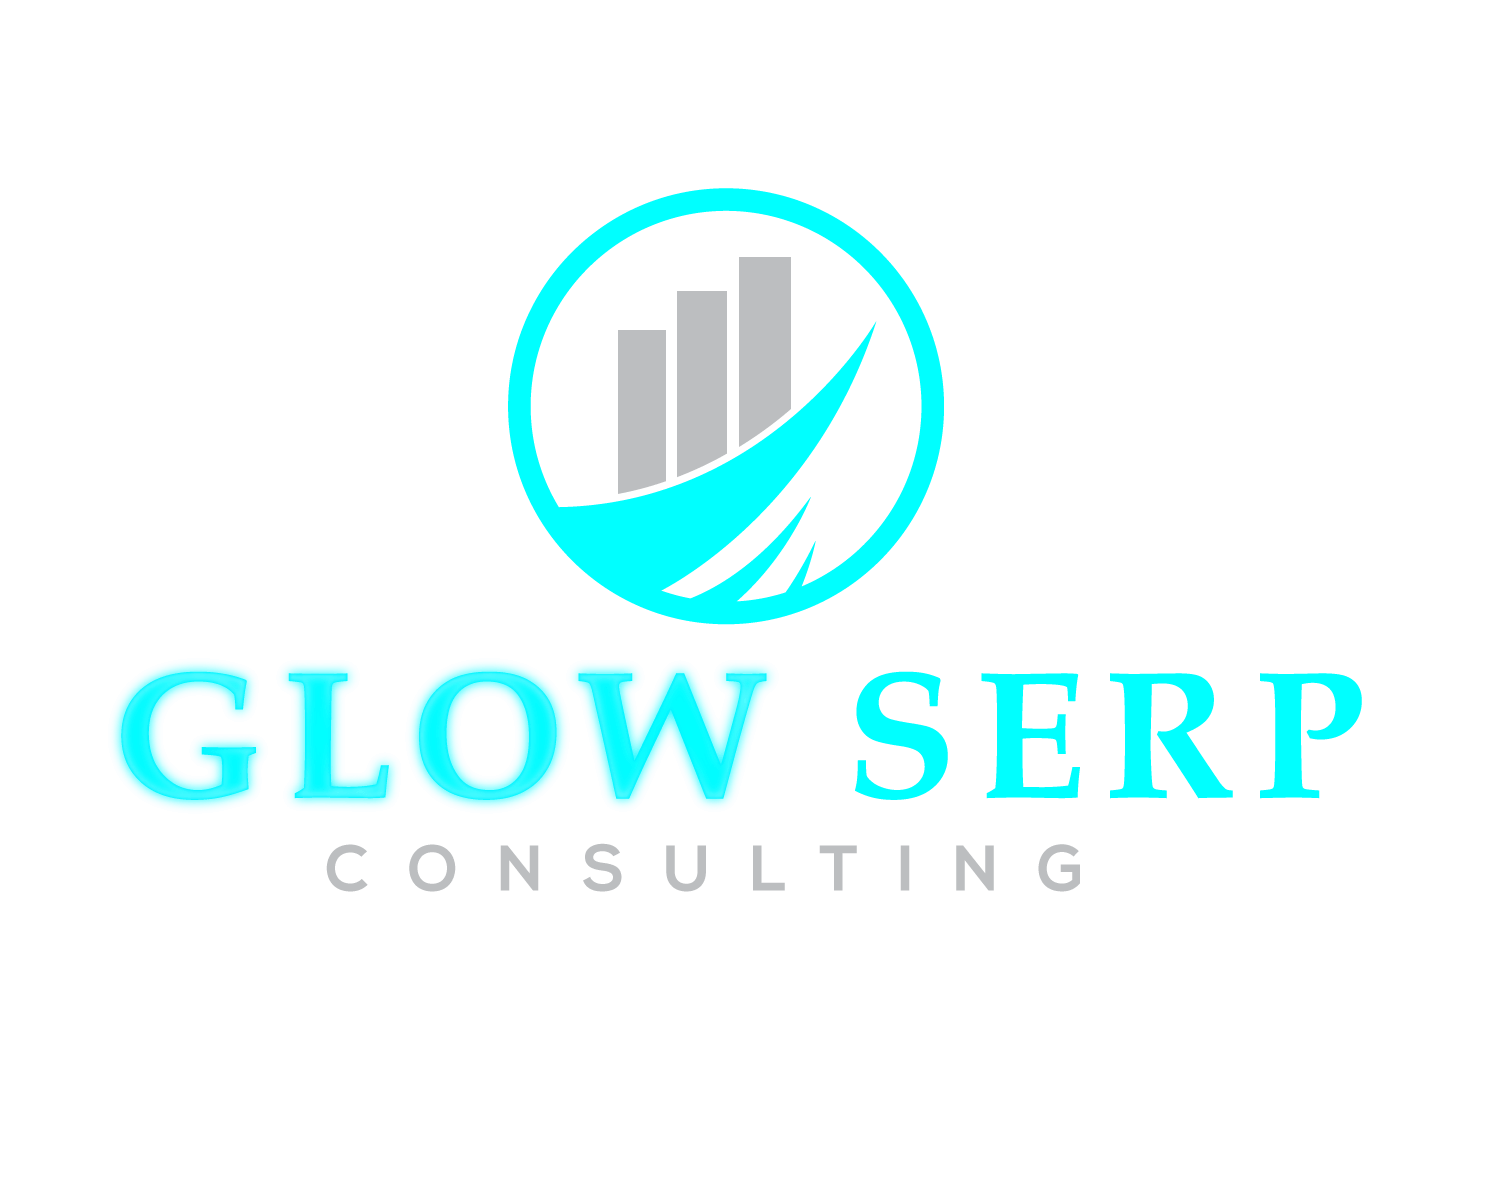 Link Building Services | Glow Serp Consulting